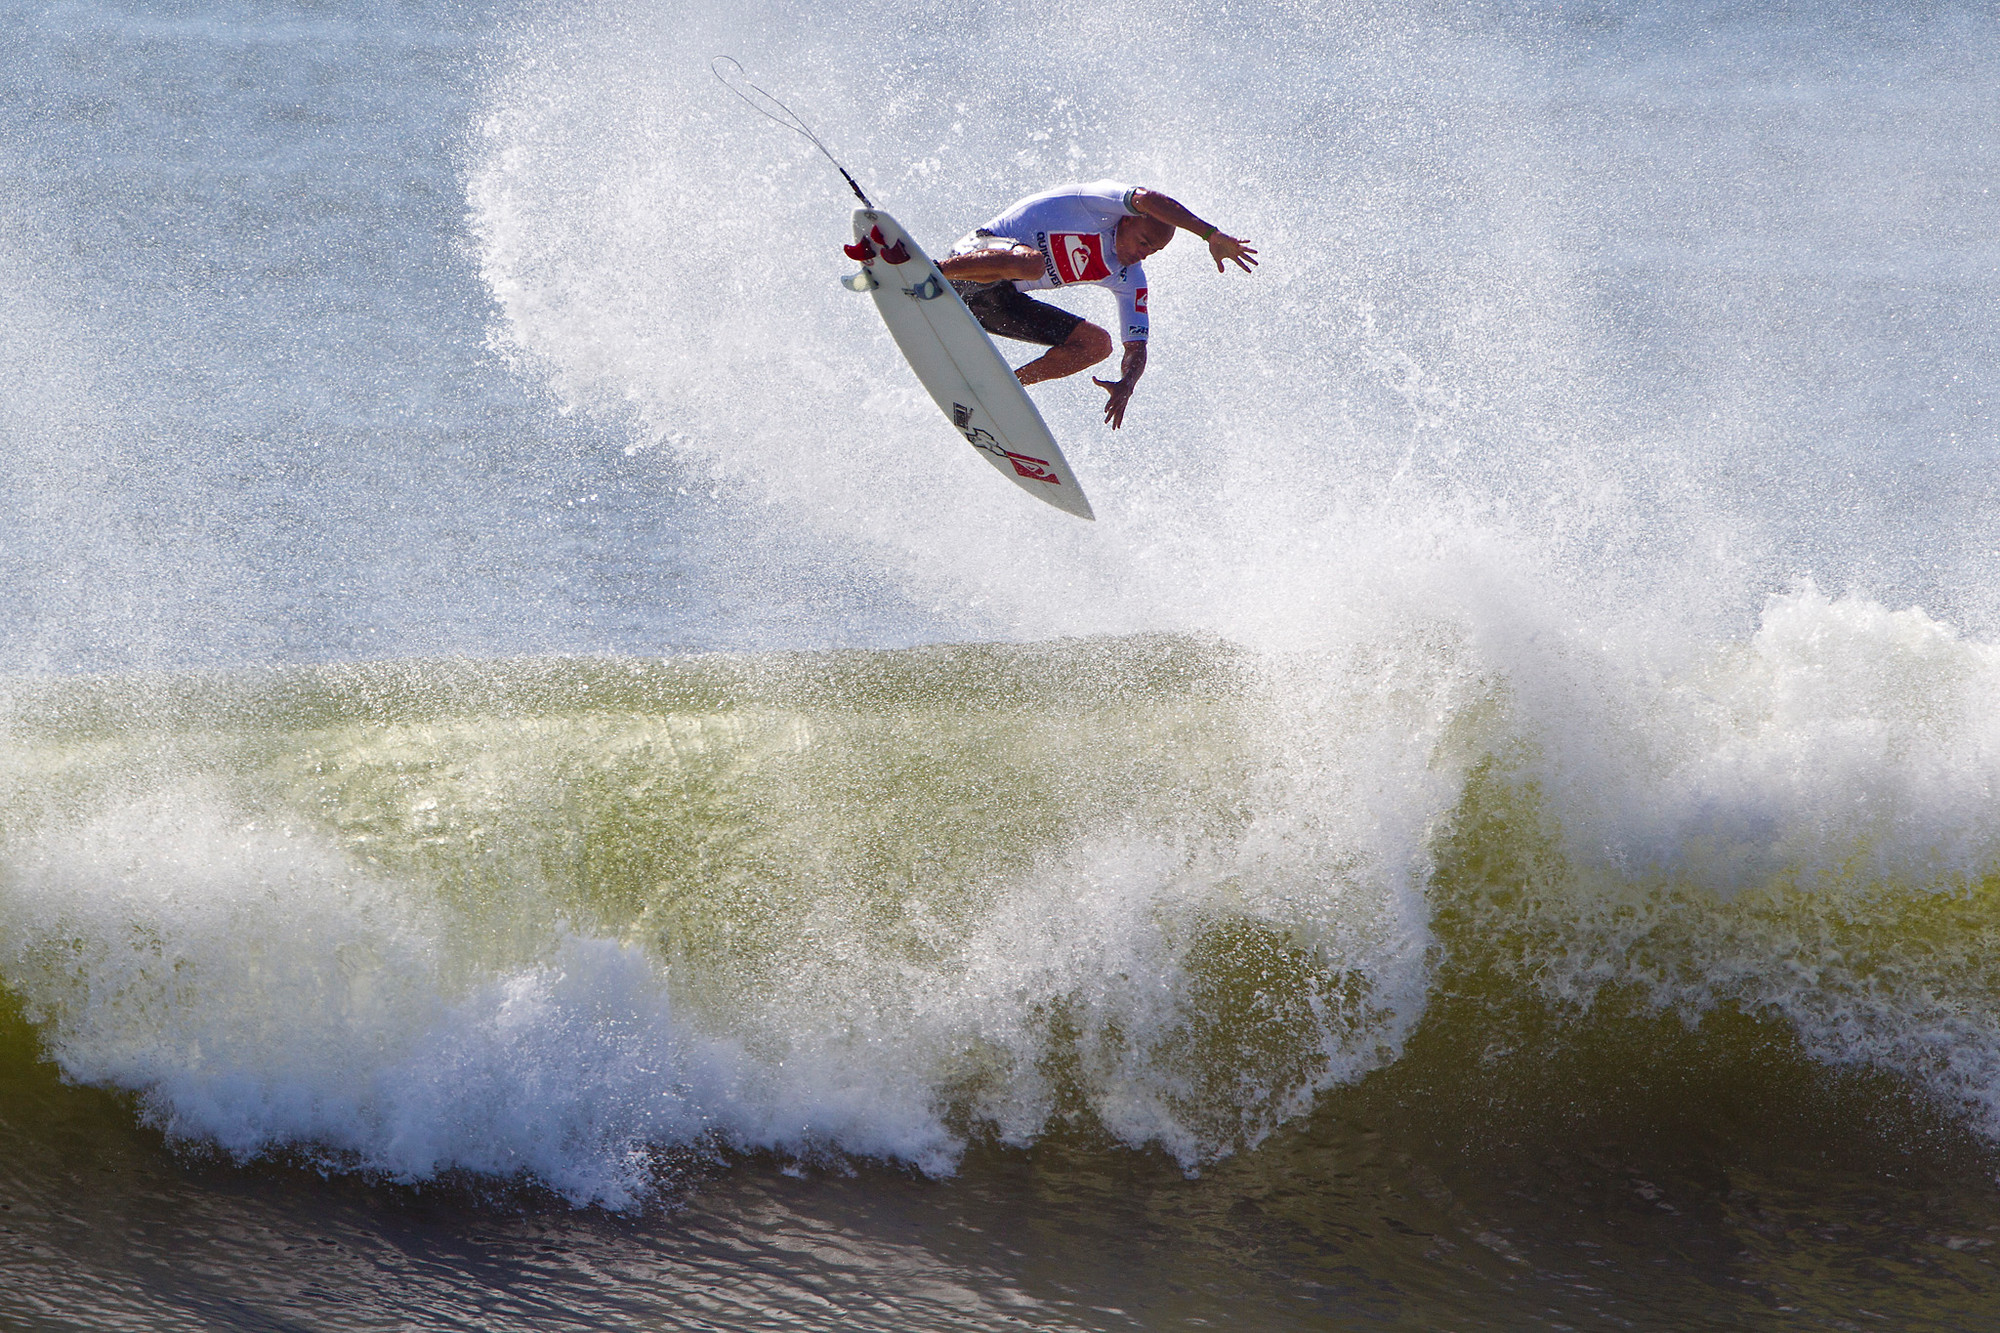 Pro surfer Kelly Slater during the finals of the Quiksilver Pro New York in 2011.